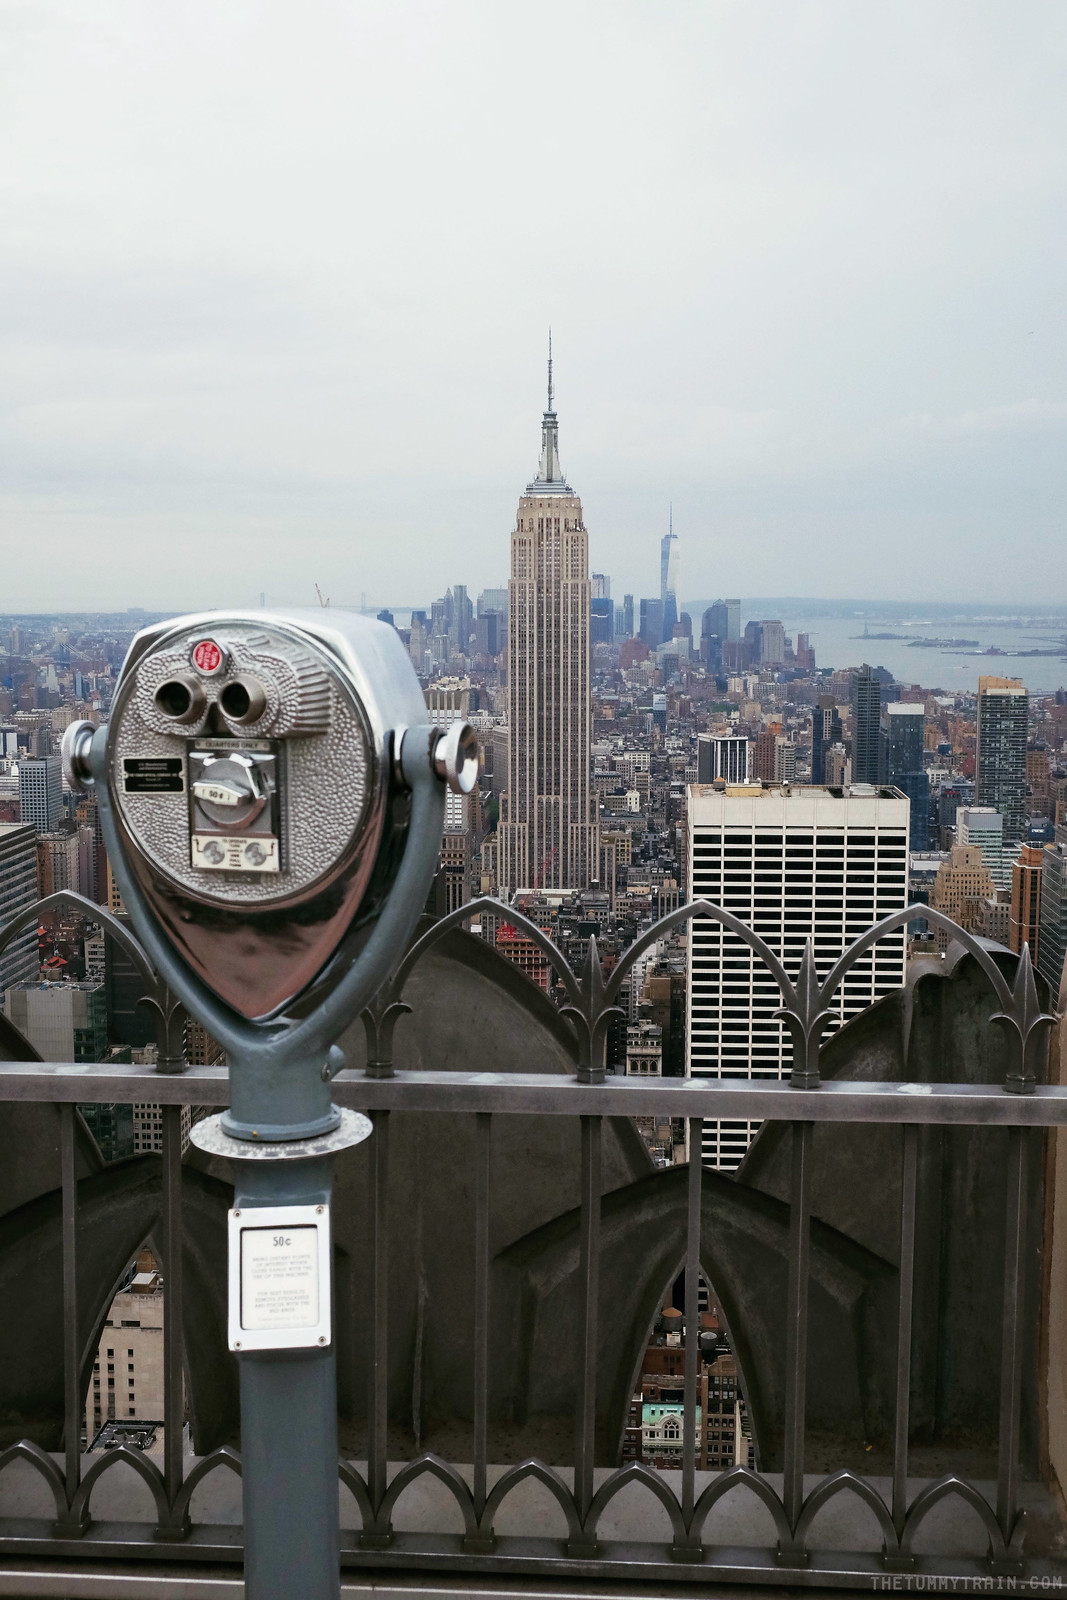 30094796101 331881e112 h - USA 2016 Travel Diary: Empire State Building VS Top of the Rock